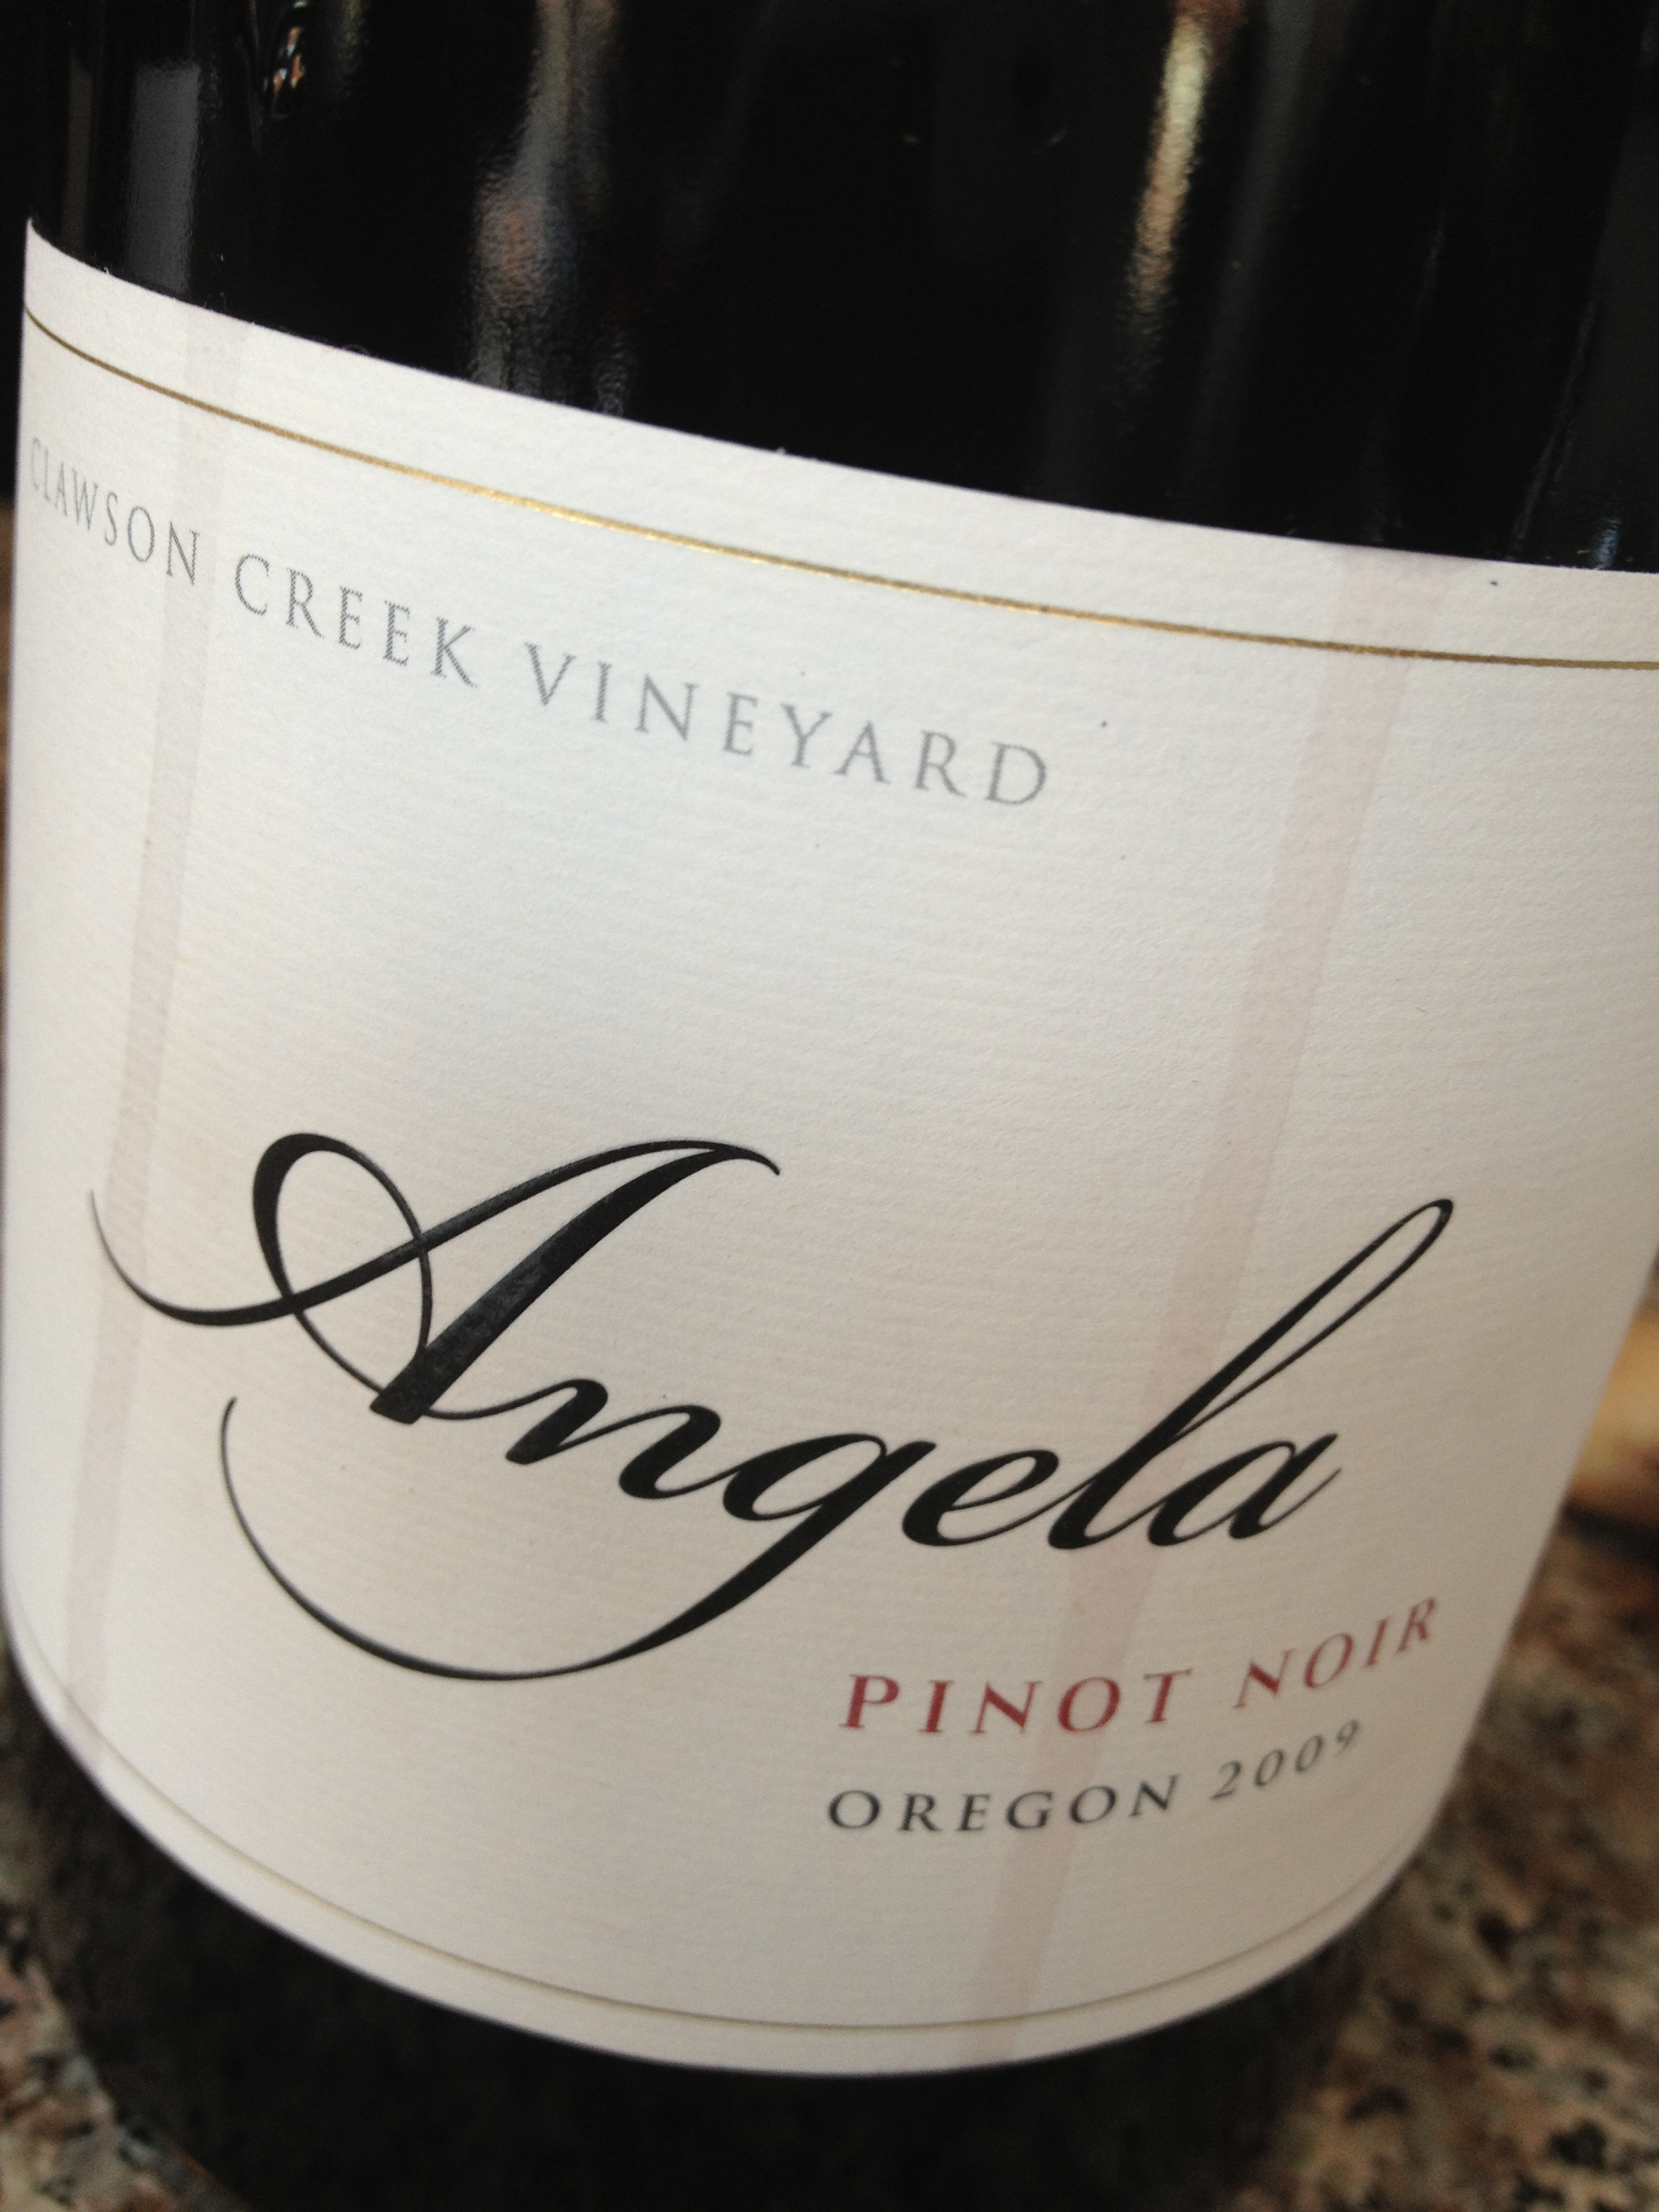 In The Glass: Angela Pinot Noir 2009 (Willamette Valley)